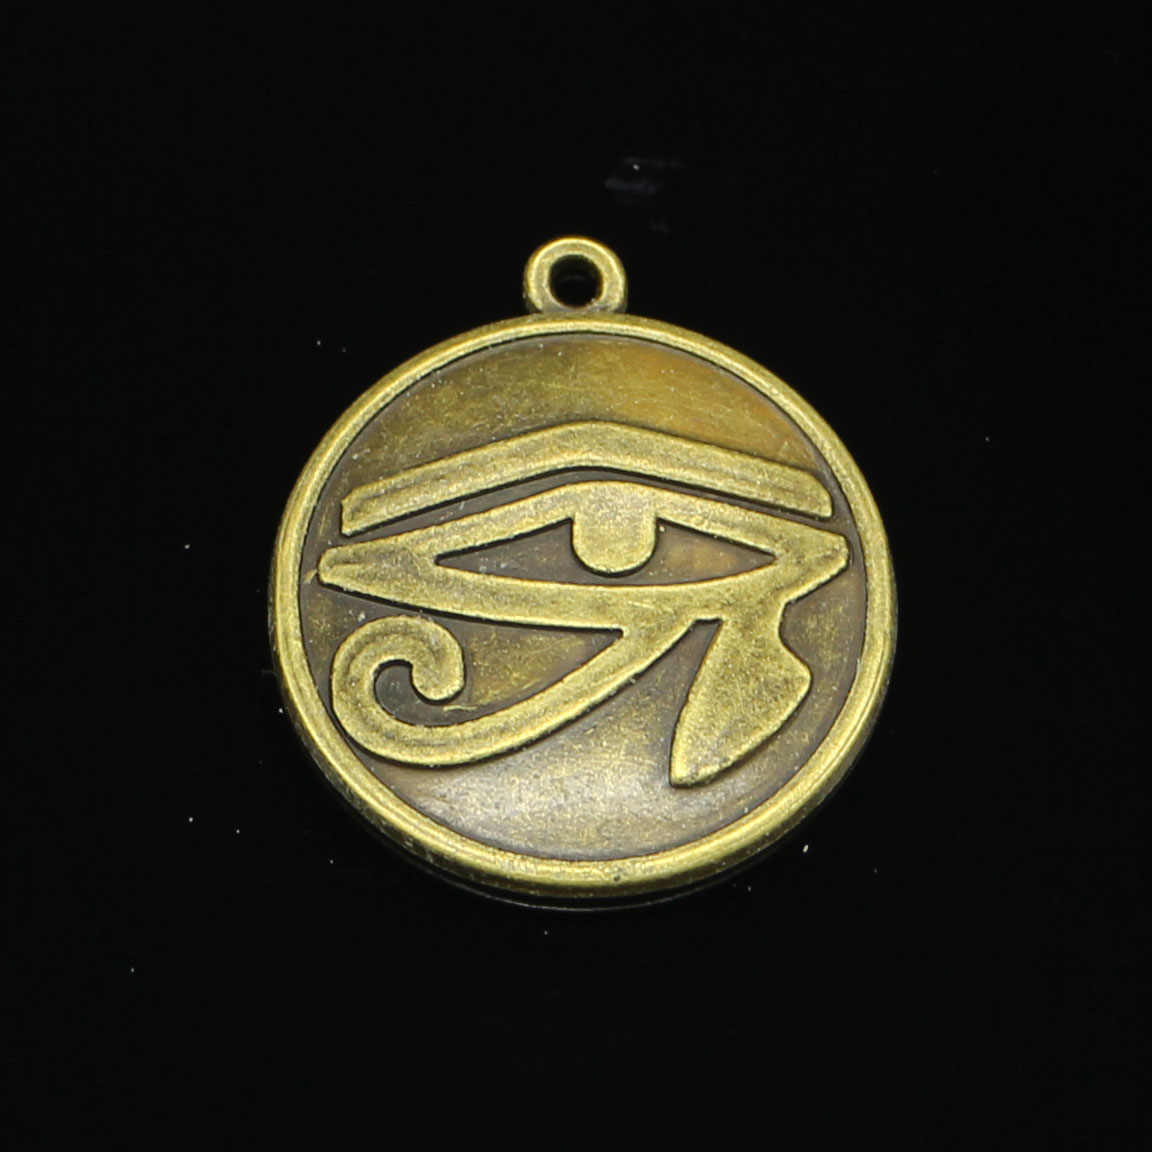 27pcs Antique Bronze Plated eye of Horus Charms for Jewelry Making DIY Handmade Pendants 27mm